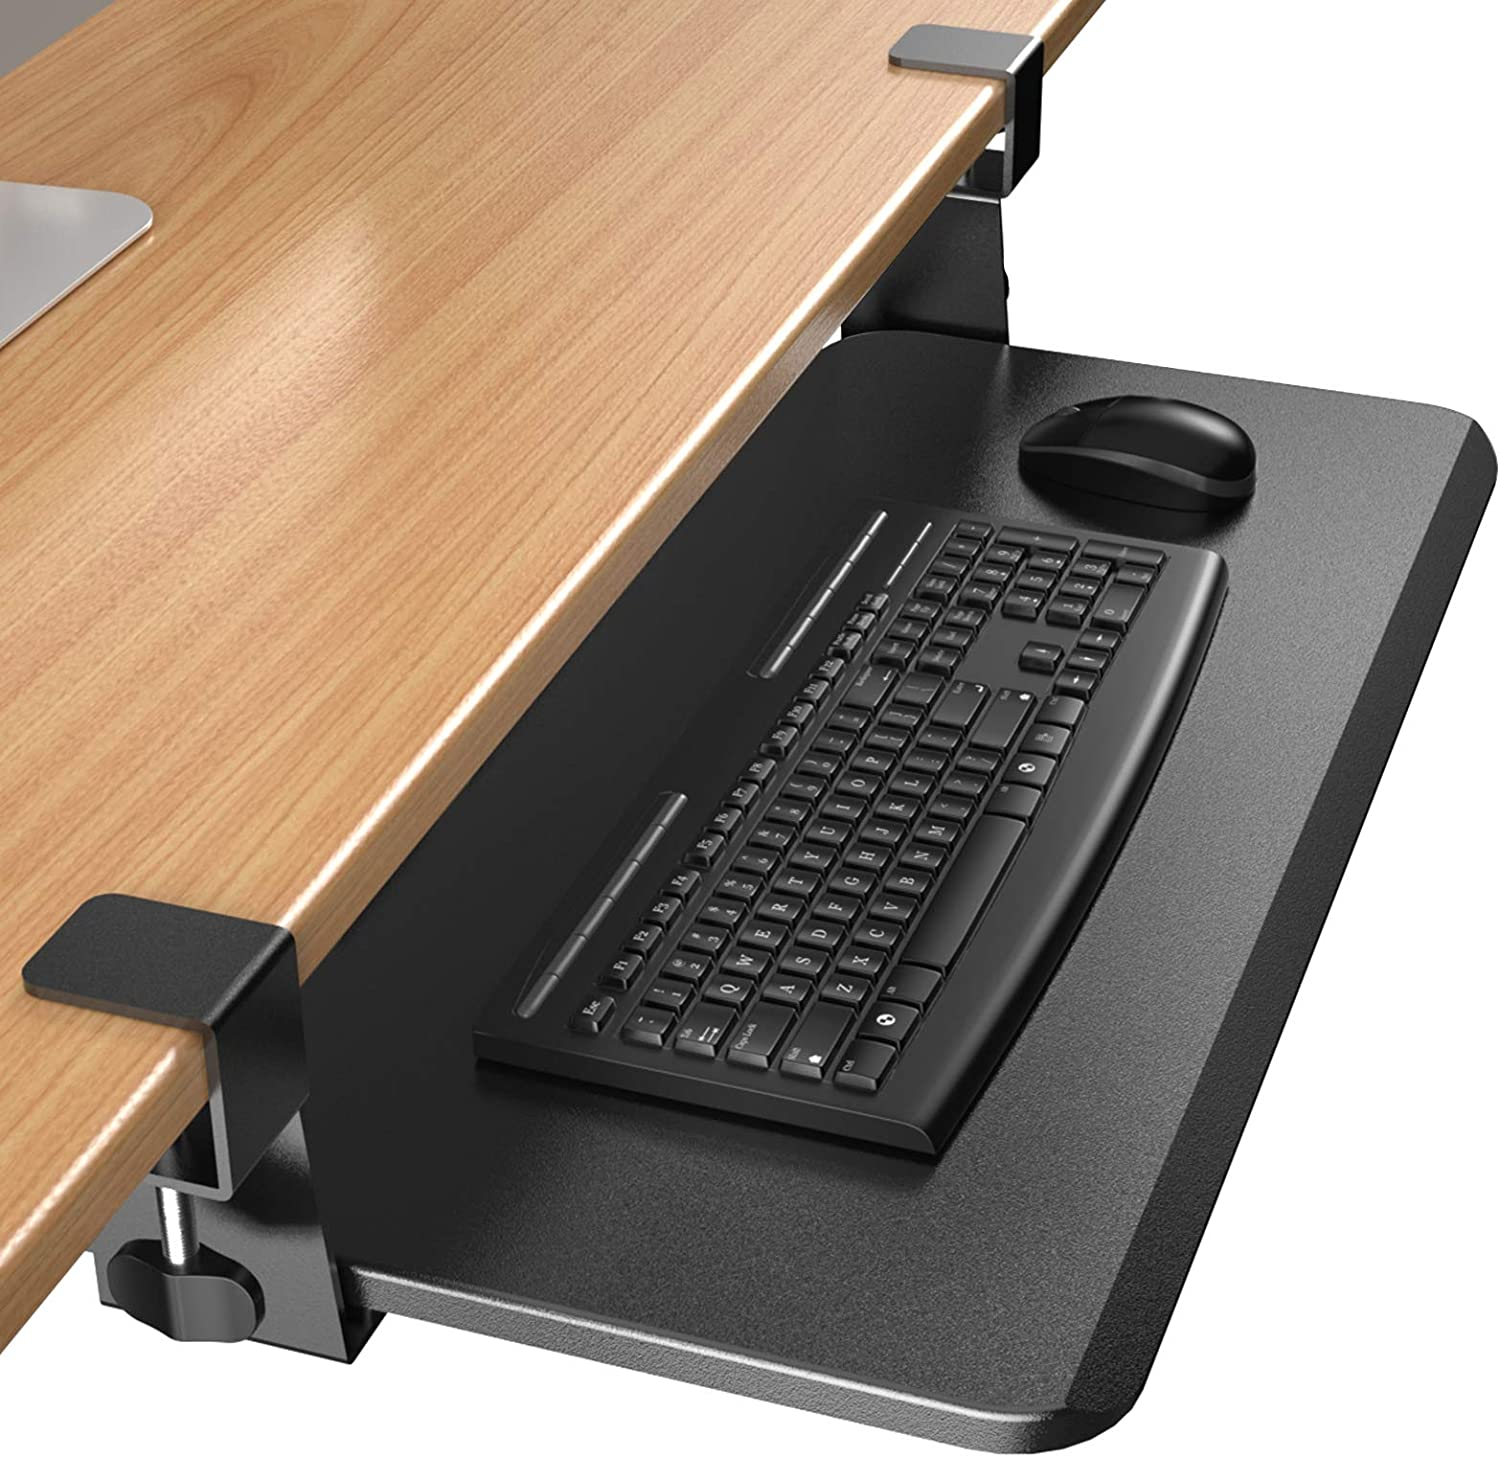 "ErGear Keyboard Tray Under Desk, Slide-Out Enlarged Keyboard Mouse Holder, Ergonomic Clamp on Computer Drawer Extender Measuring 26.3"" x 11.8"", Black - EGKB02"